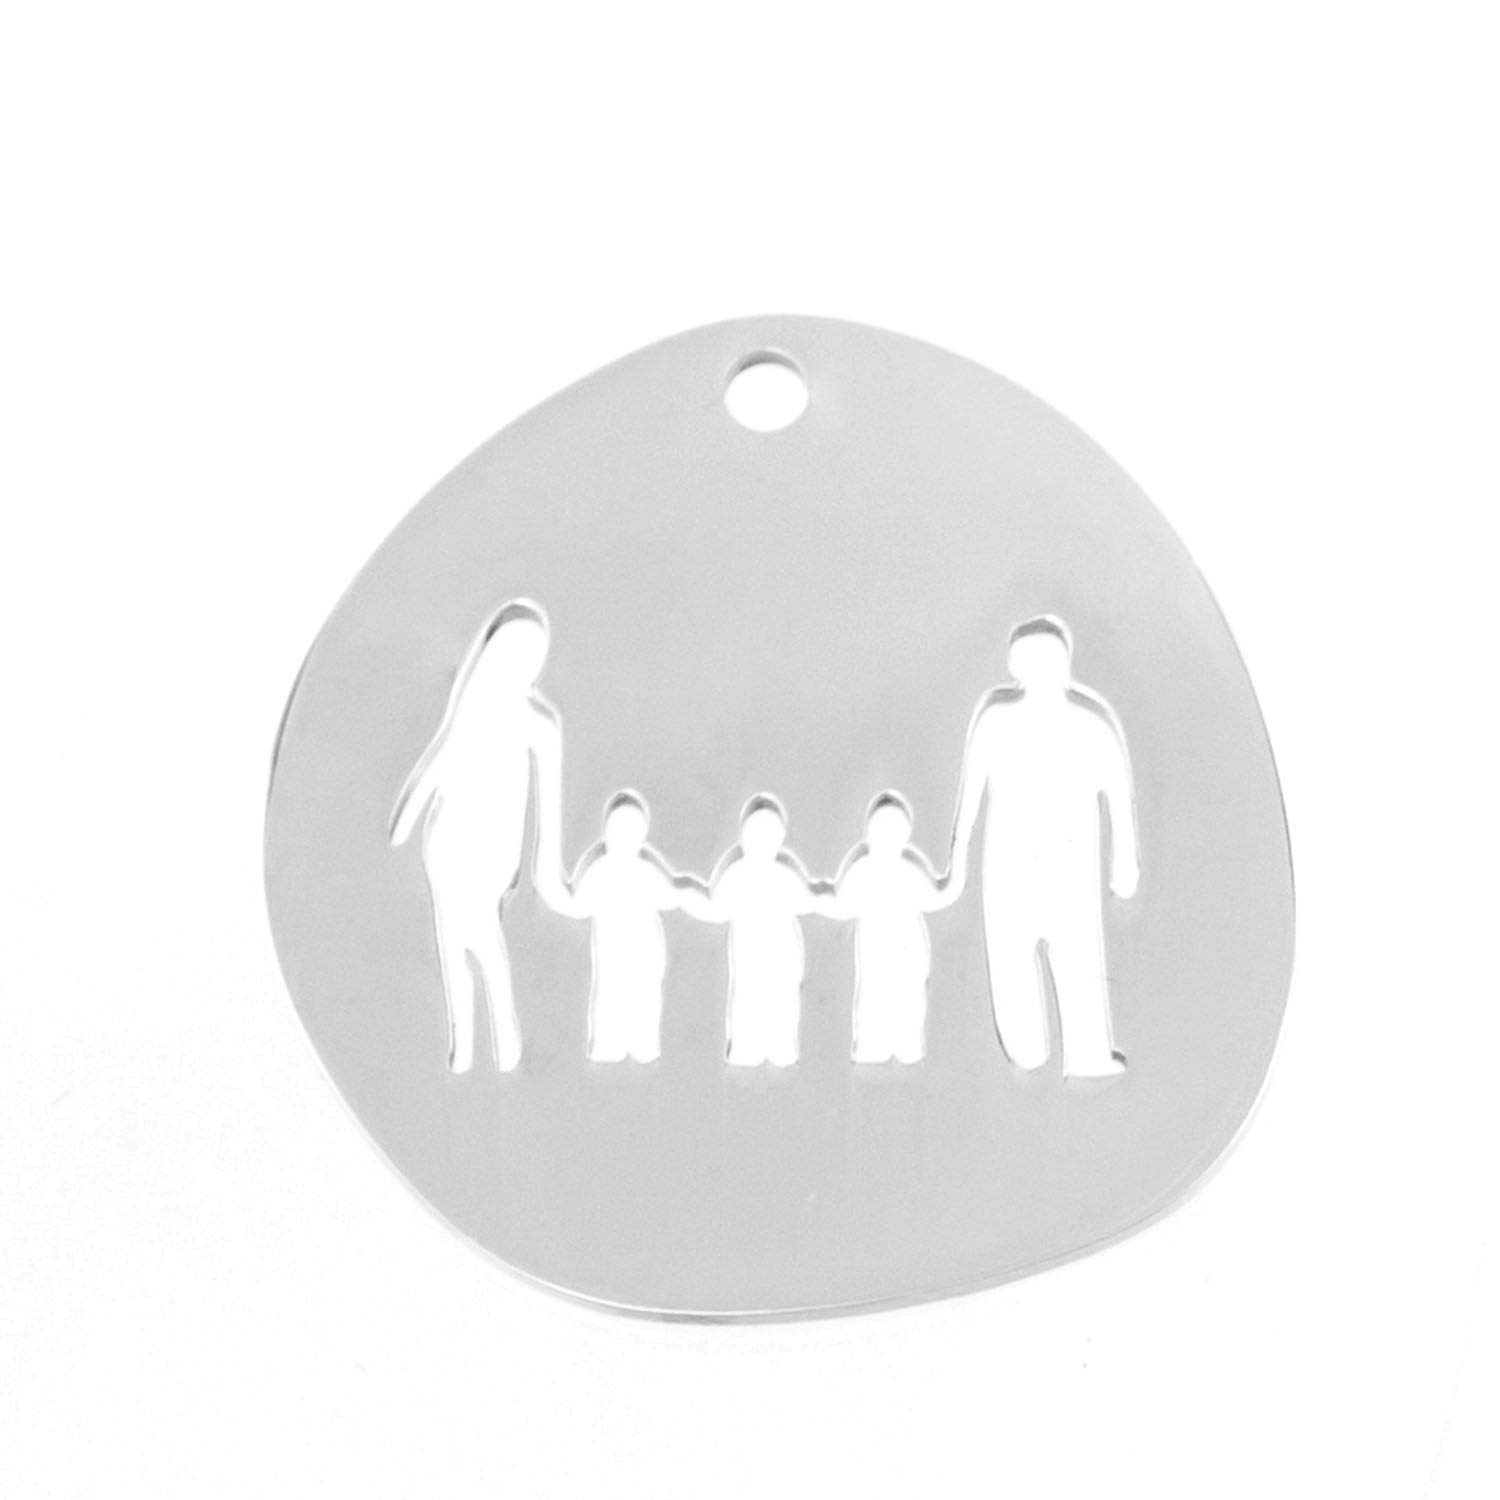 Family Pendants Dad Mum Children Boy Girls in Charms for Print Both Sides Mirror Polish Stainless Steel 100 Pcs,2 Girls